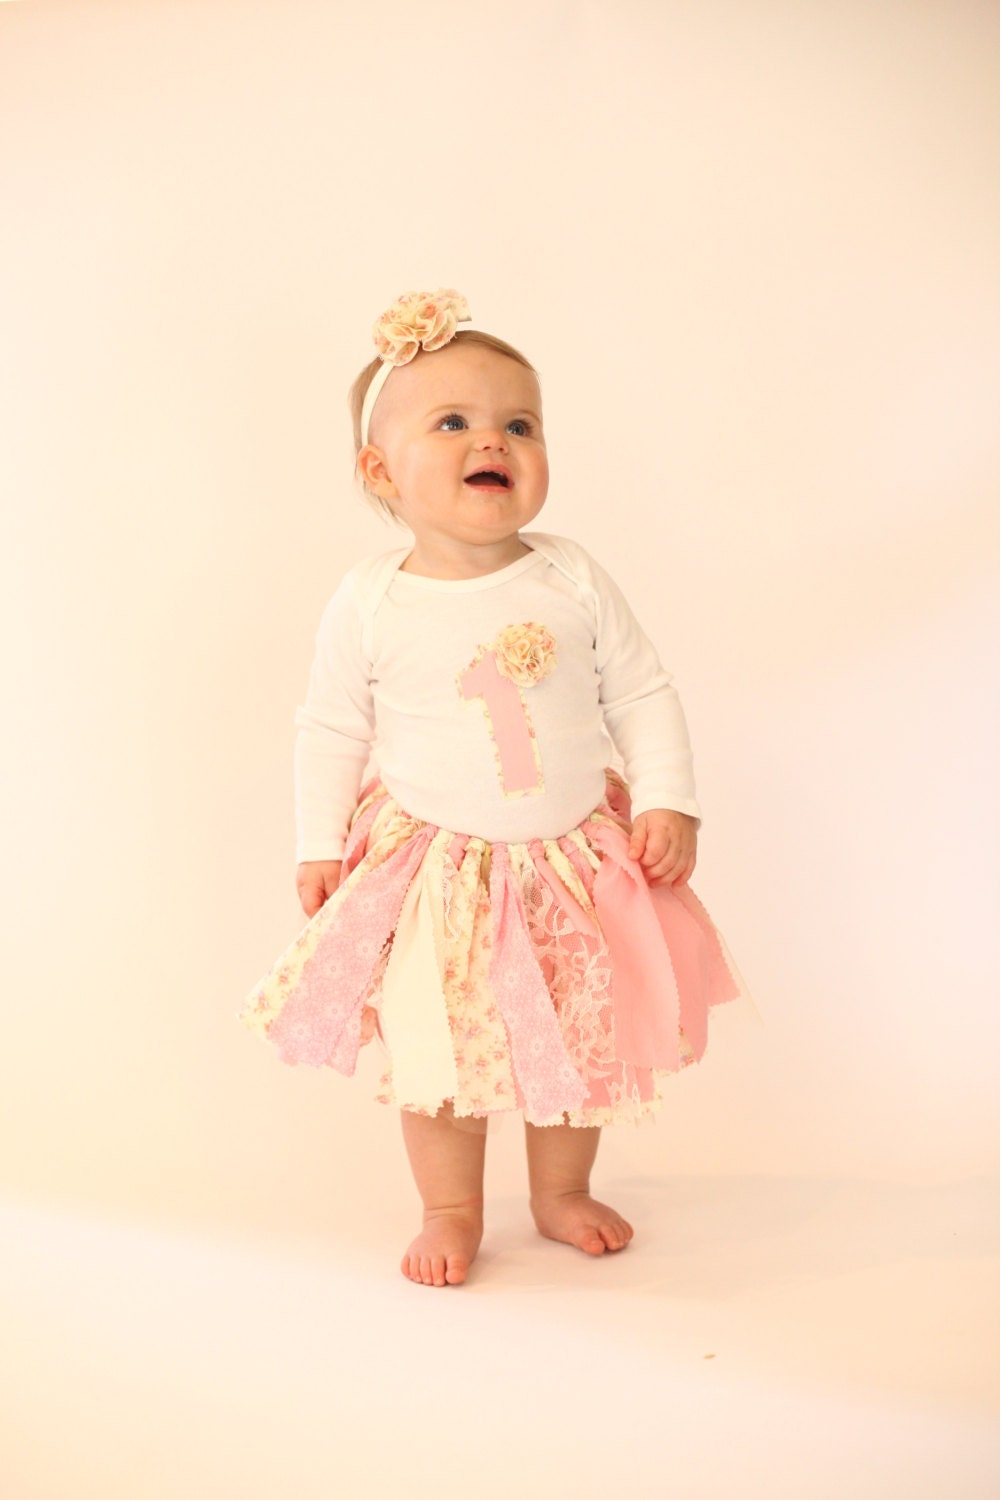 Shabby chic first birthday outfit number by mksbowtique on etsy - Shabby chic outfit ideas ...